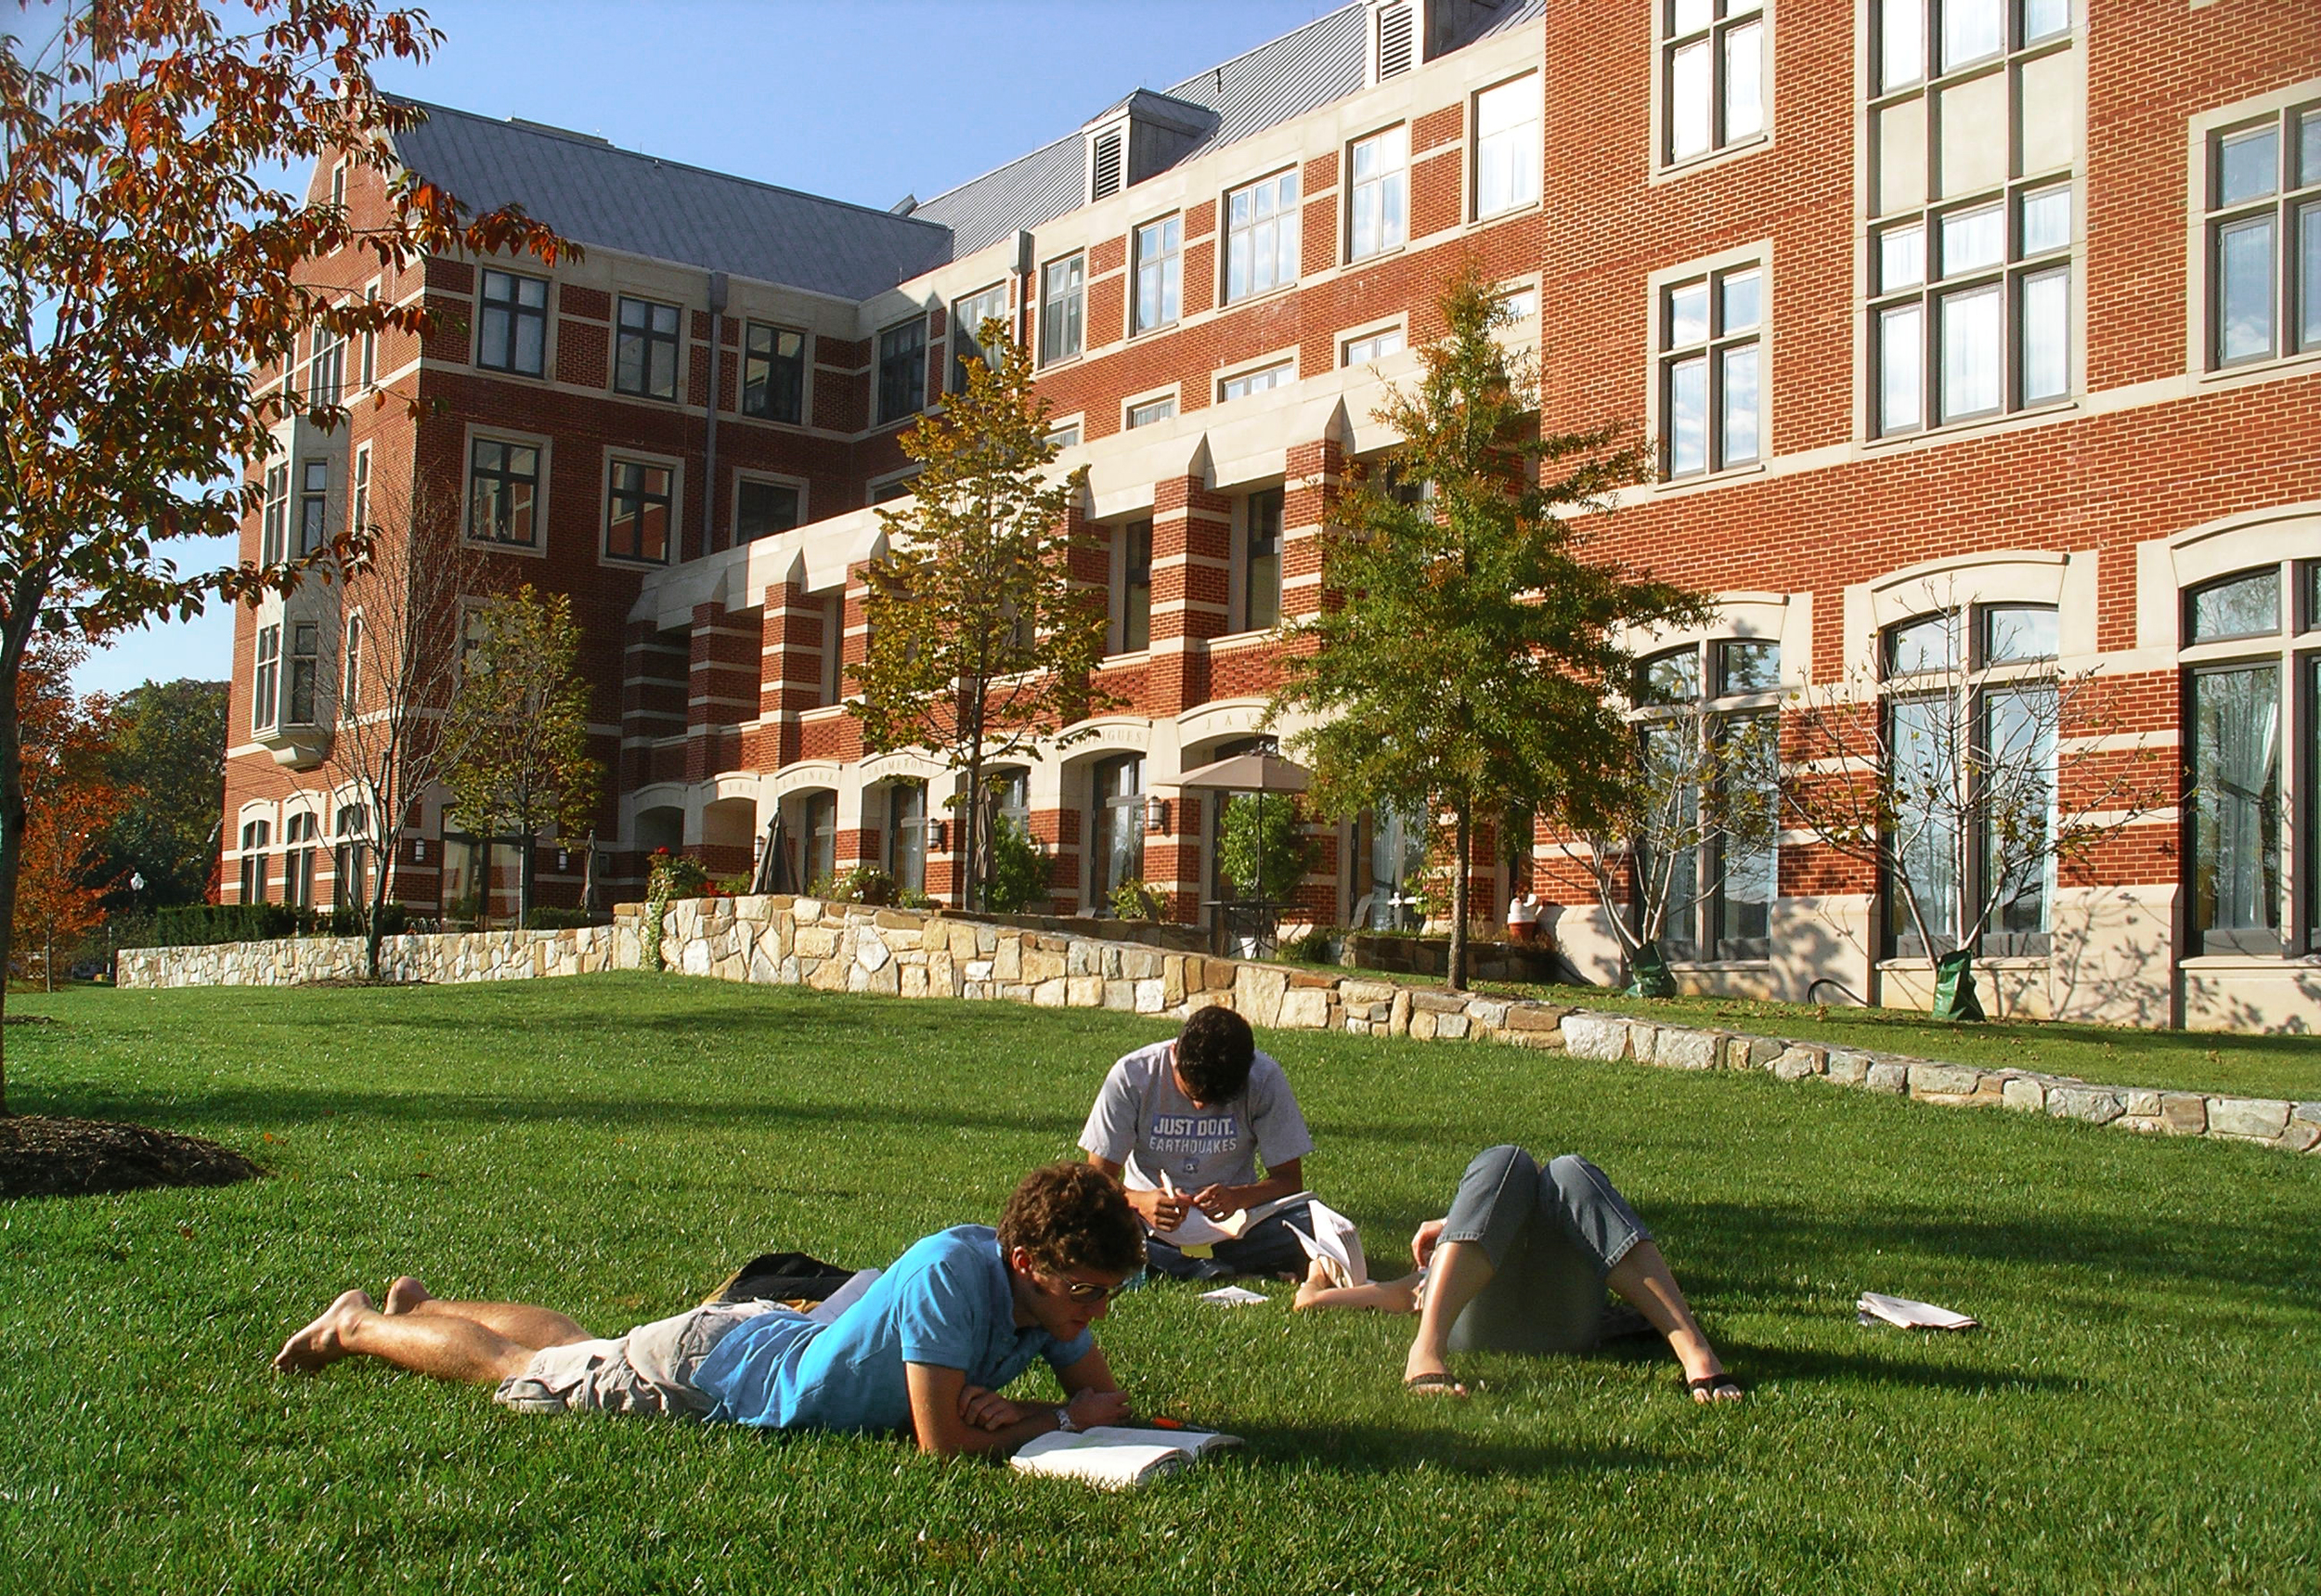 It's important not to have a grass allergy in college.